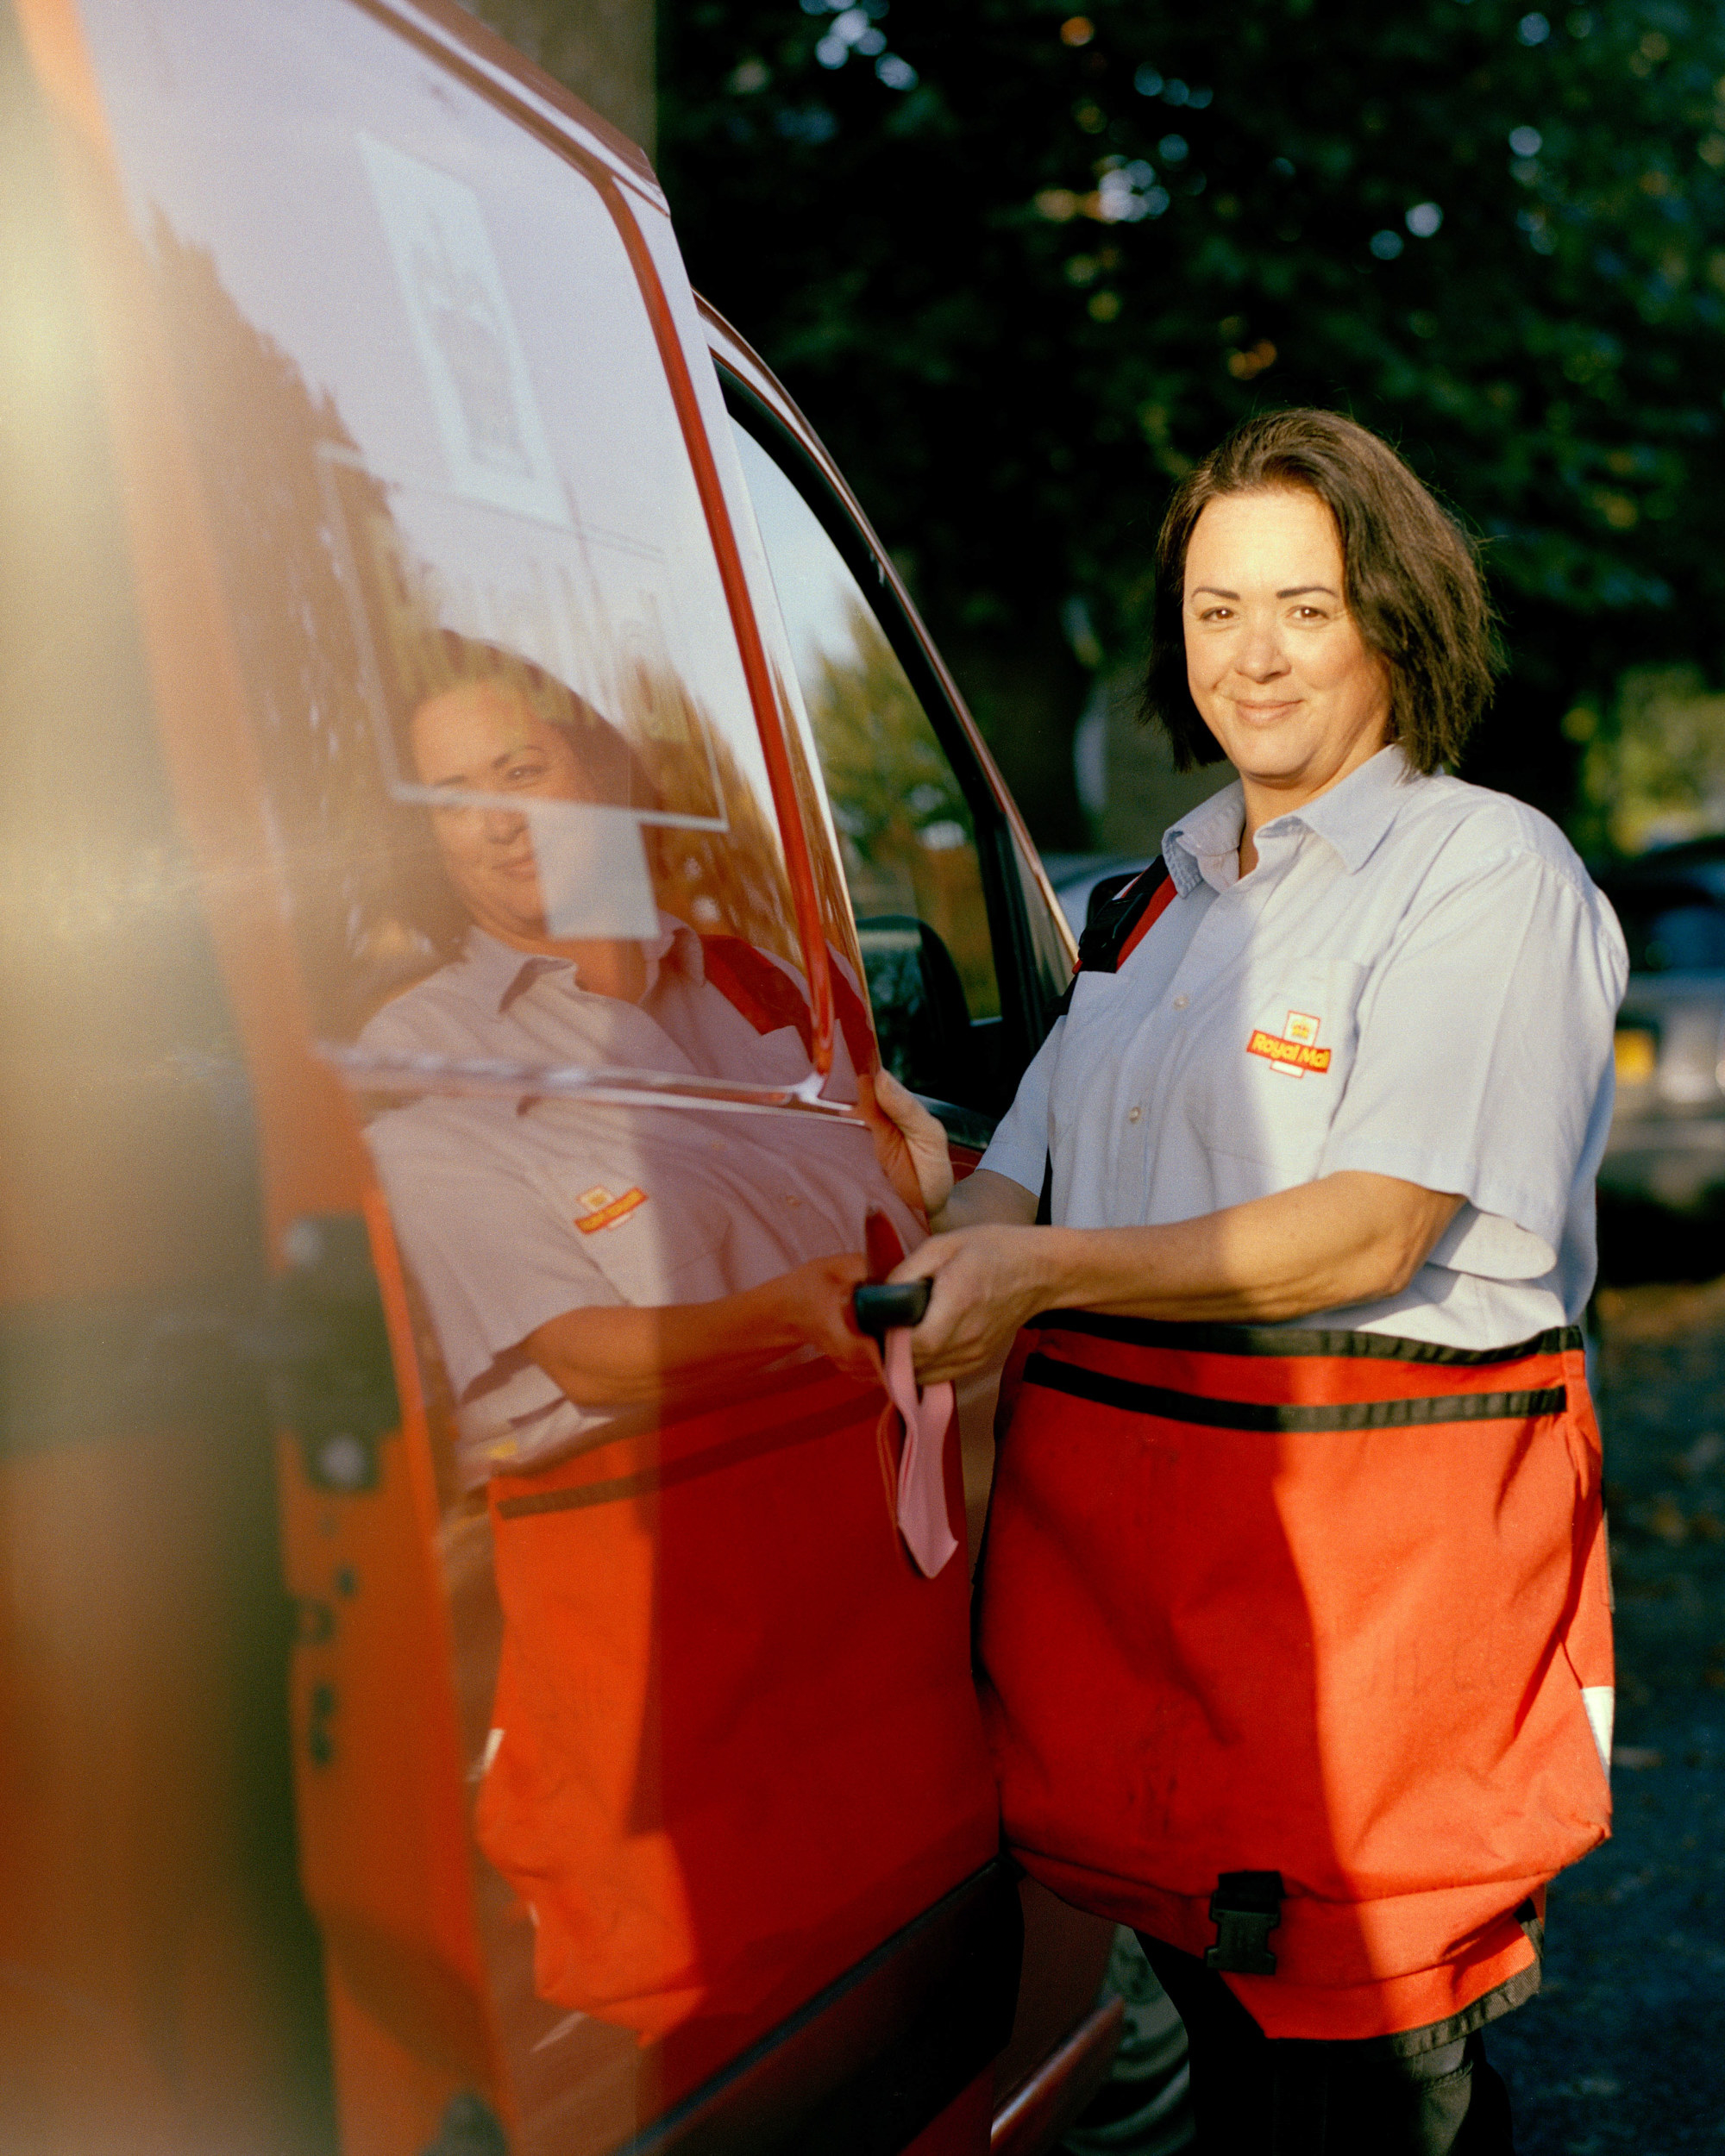 A woman postal work in the United Kingdom standing next to her truck